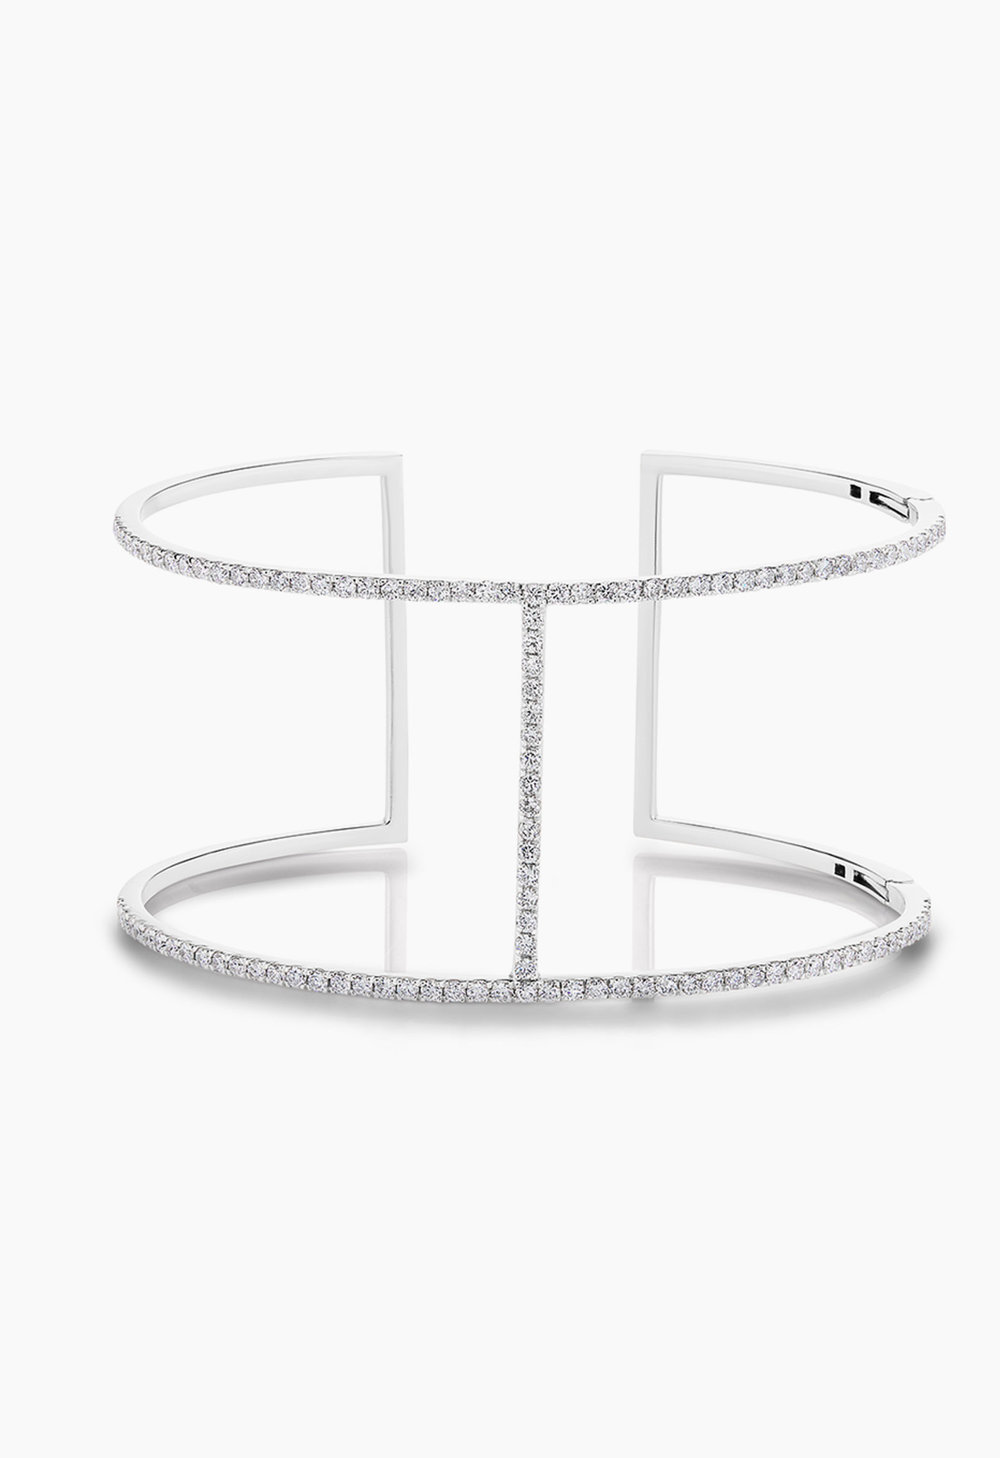 The KBH CUFF - The brand's namesake with a signature H, 14K reclaimed solid gold for strength. 1.77 CTW handset of fine, cultivated diamonds, colorless - D, E, F and clarity - VS